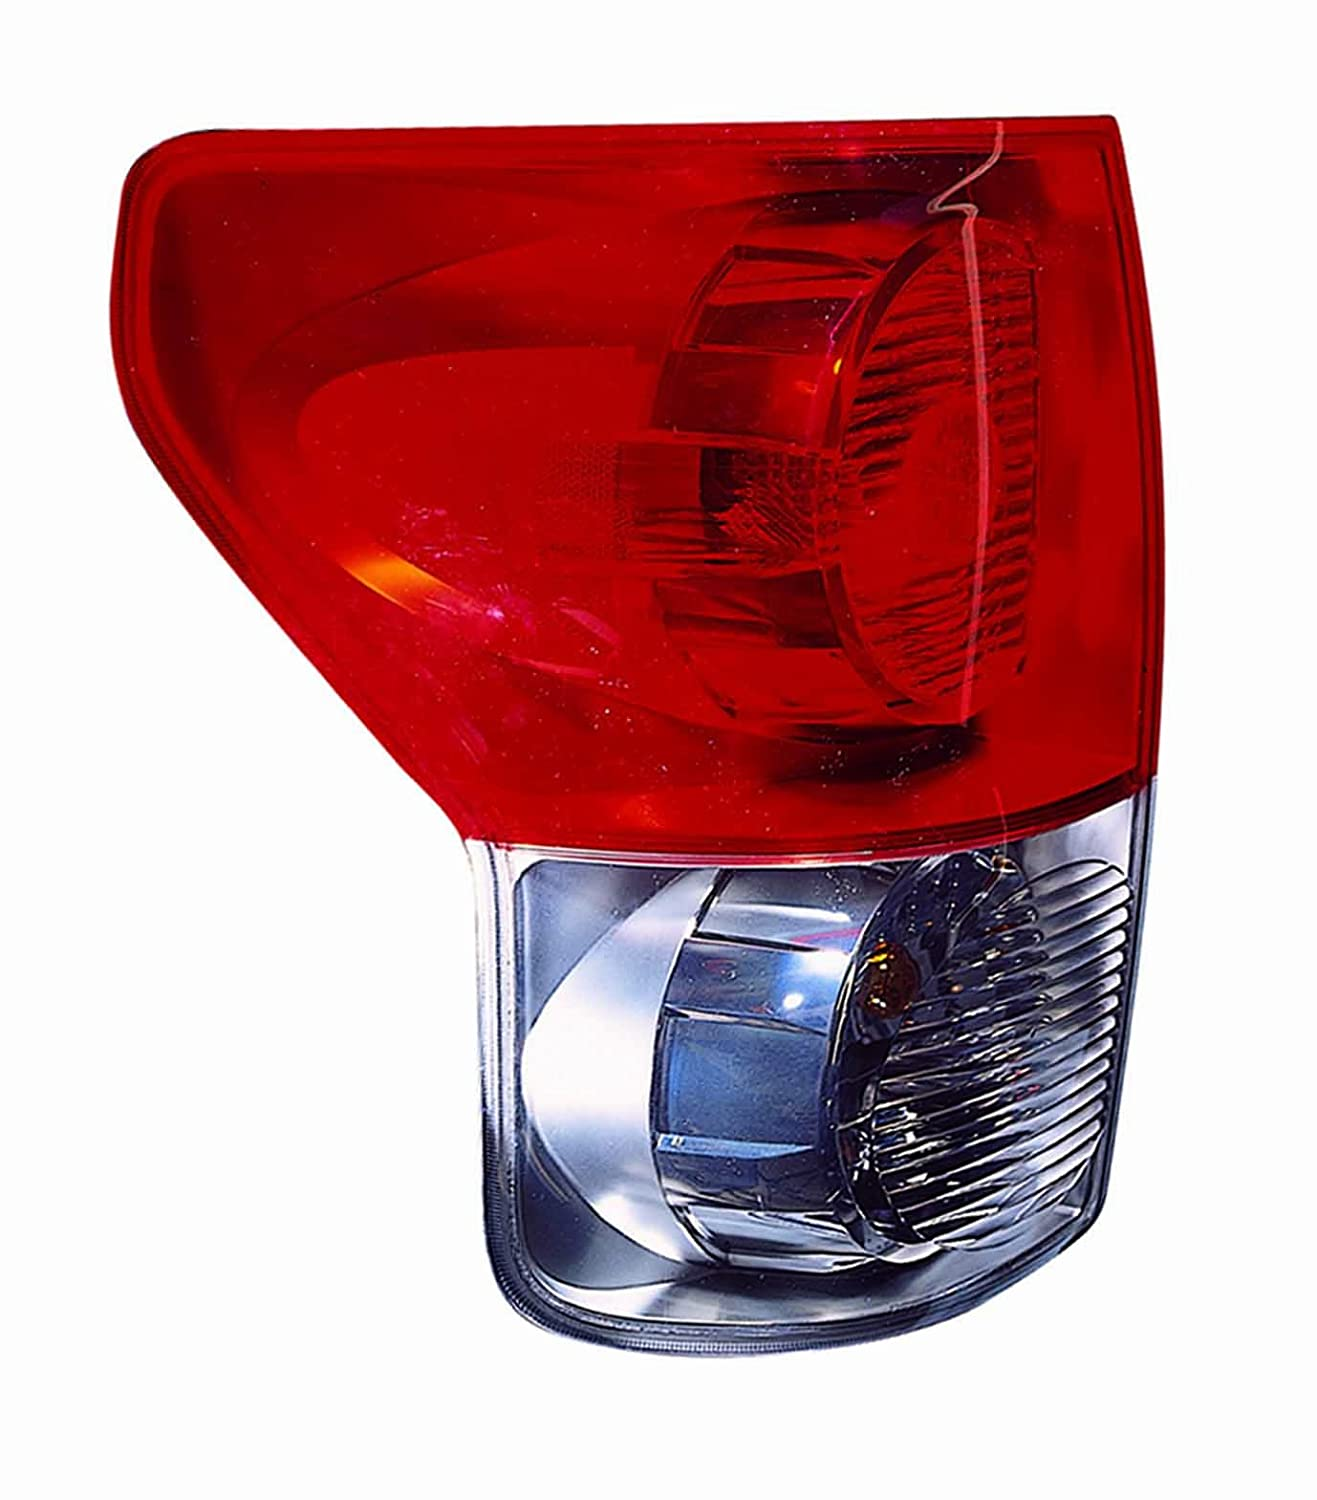 Depo 312-1984R-AS Toyota Tundra Passenger Side Replacement Taillight Assembly 02-00-312-1984R-AS